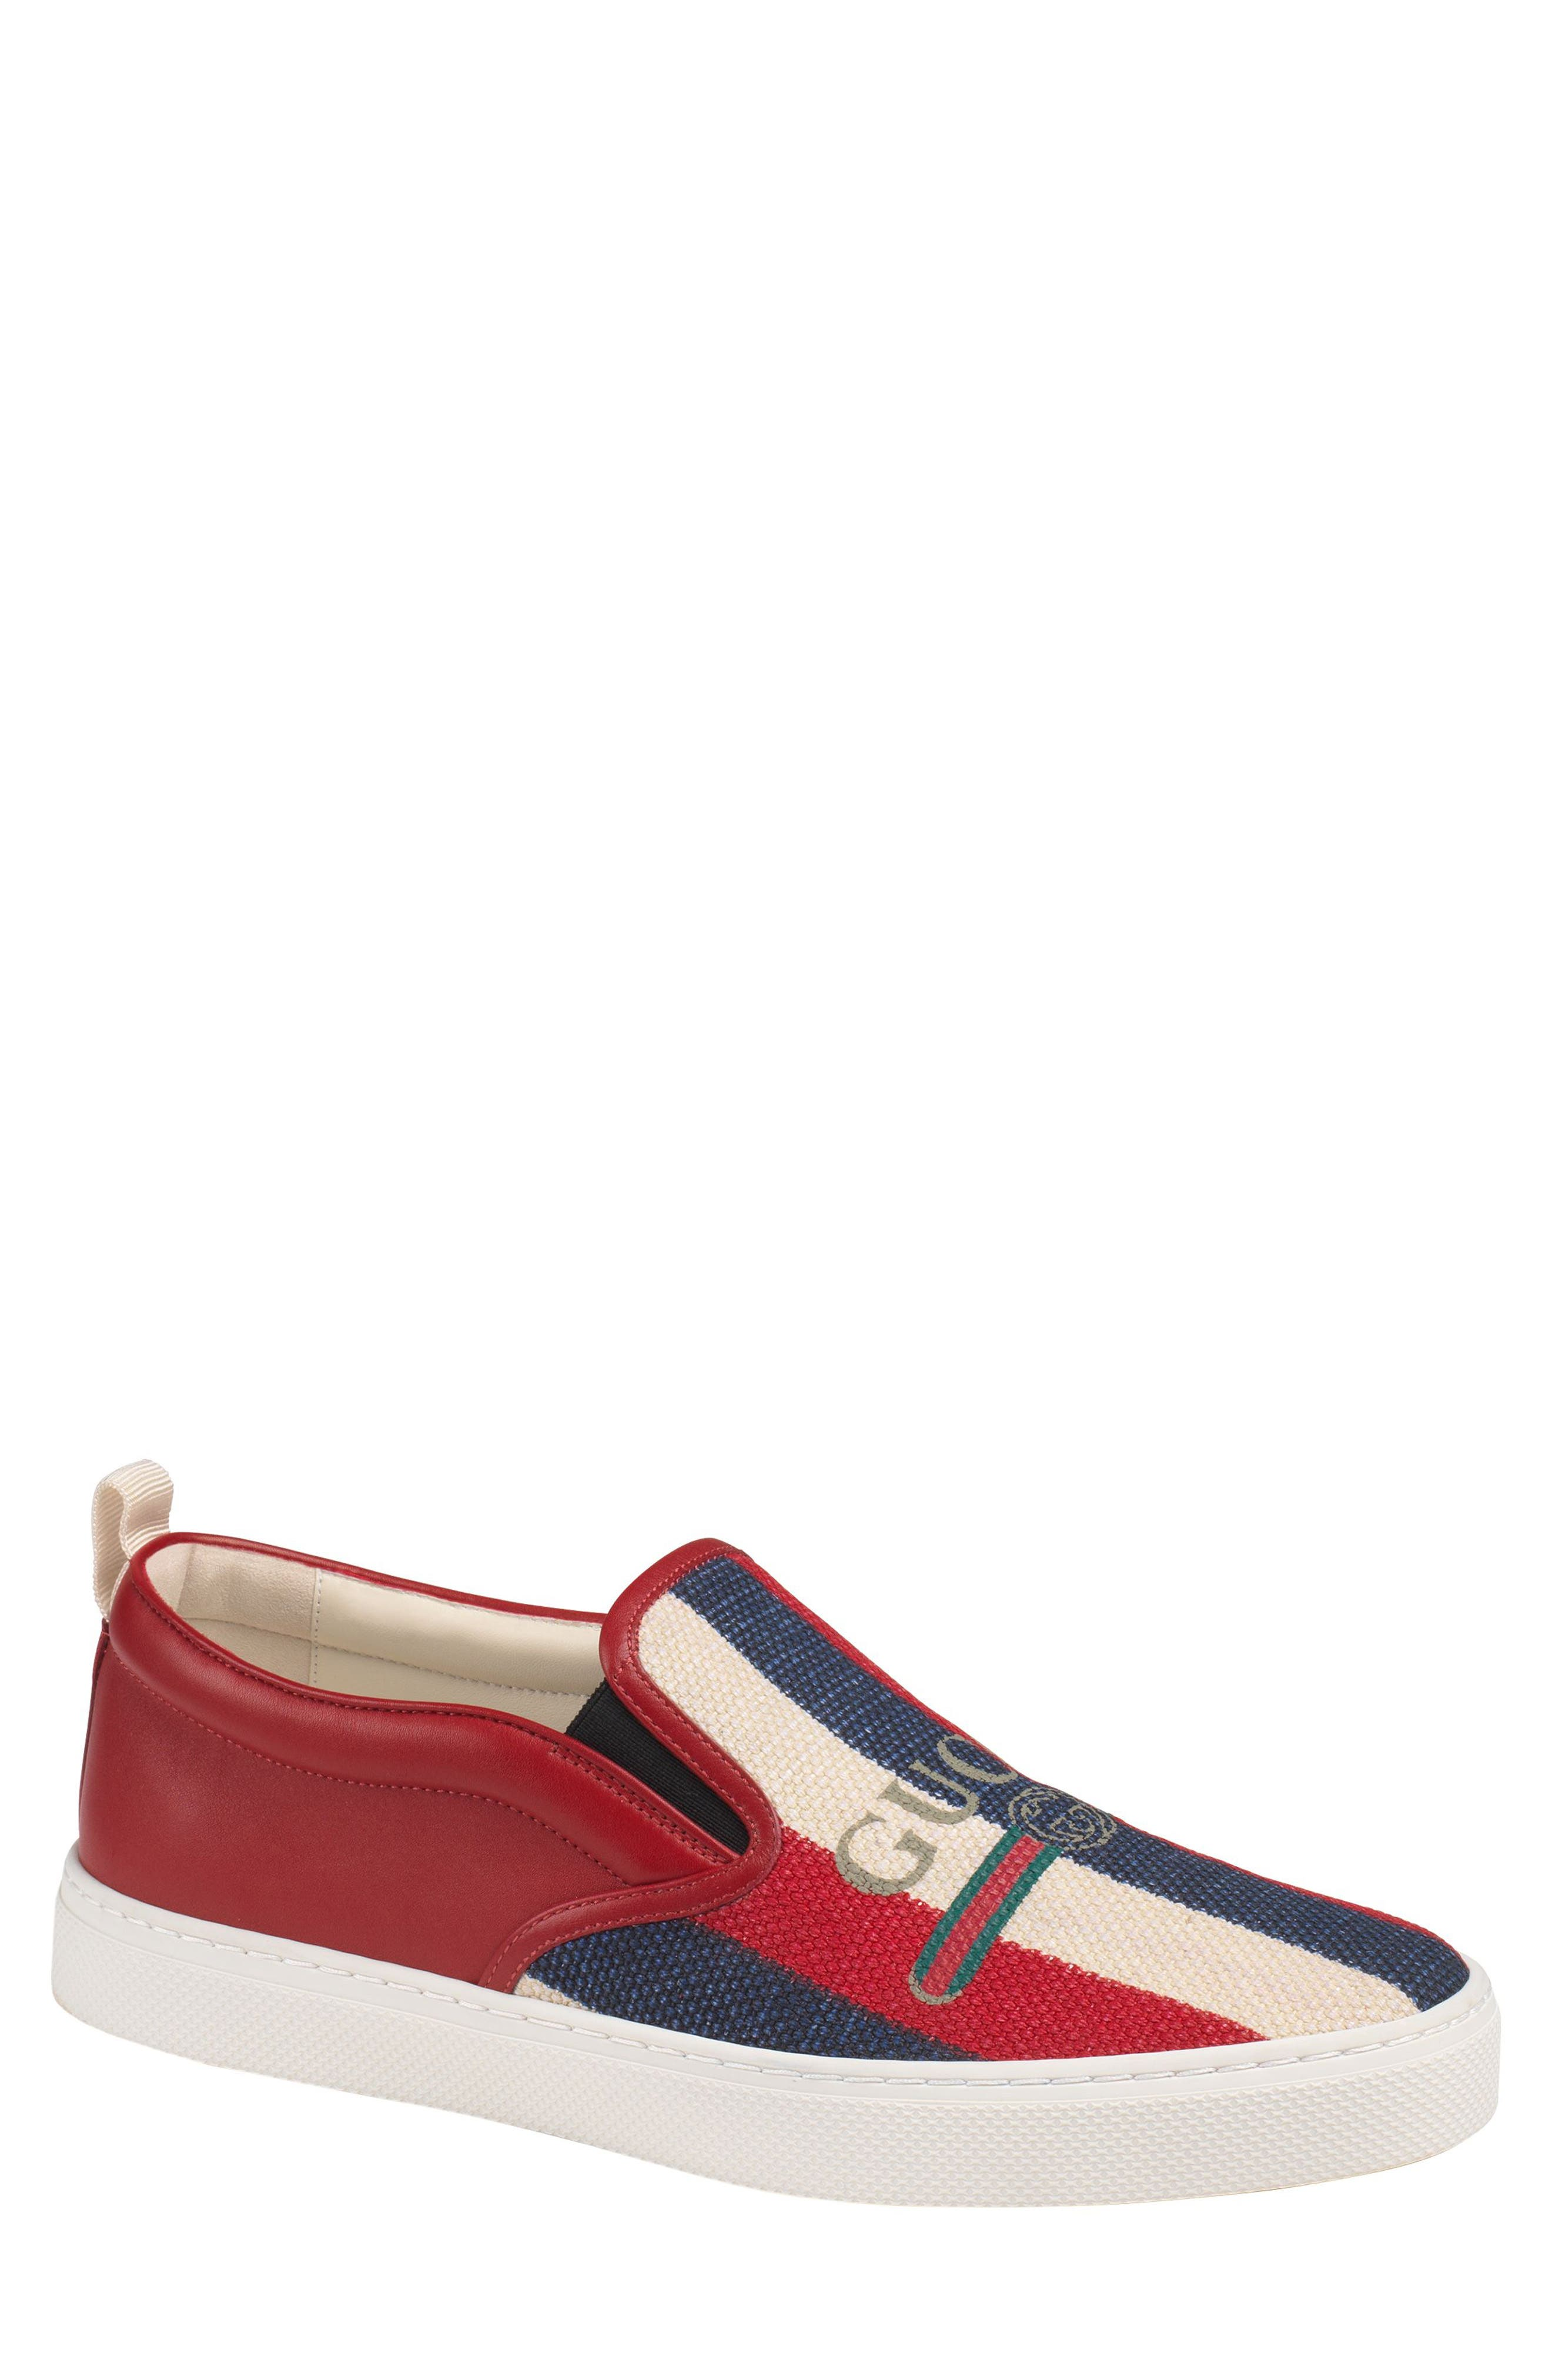 Gucci Dublin Bar Logo Linen Slip-On Sneaker (Men)